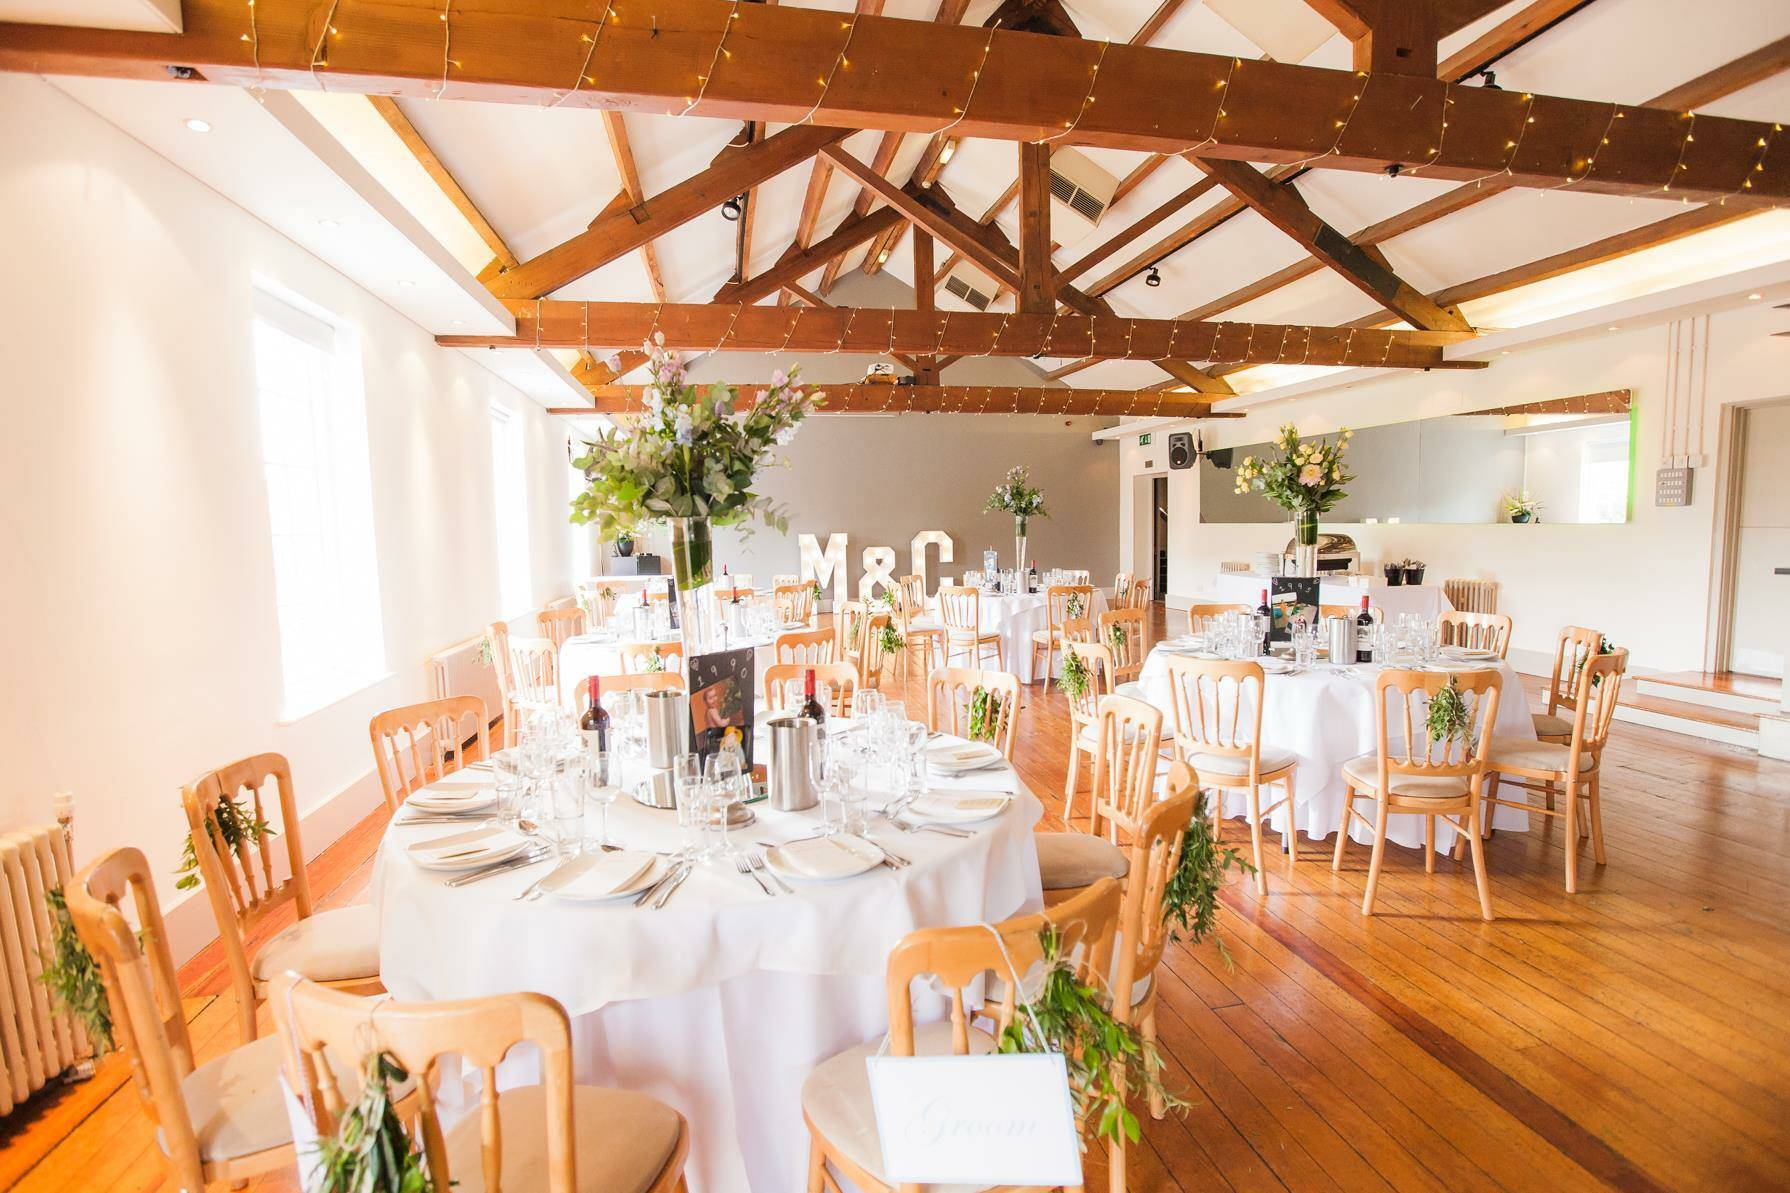 wedding venues manchester, the castlefield rooms wedding venue